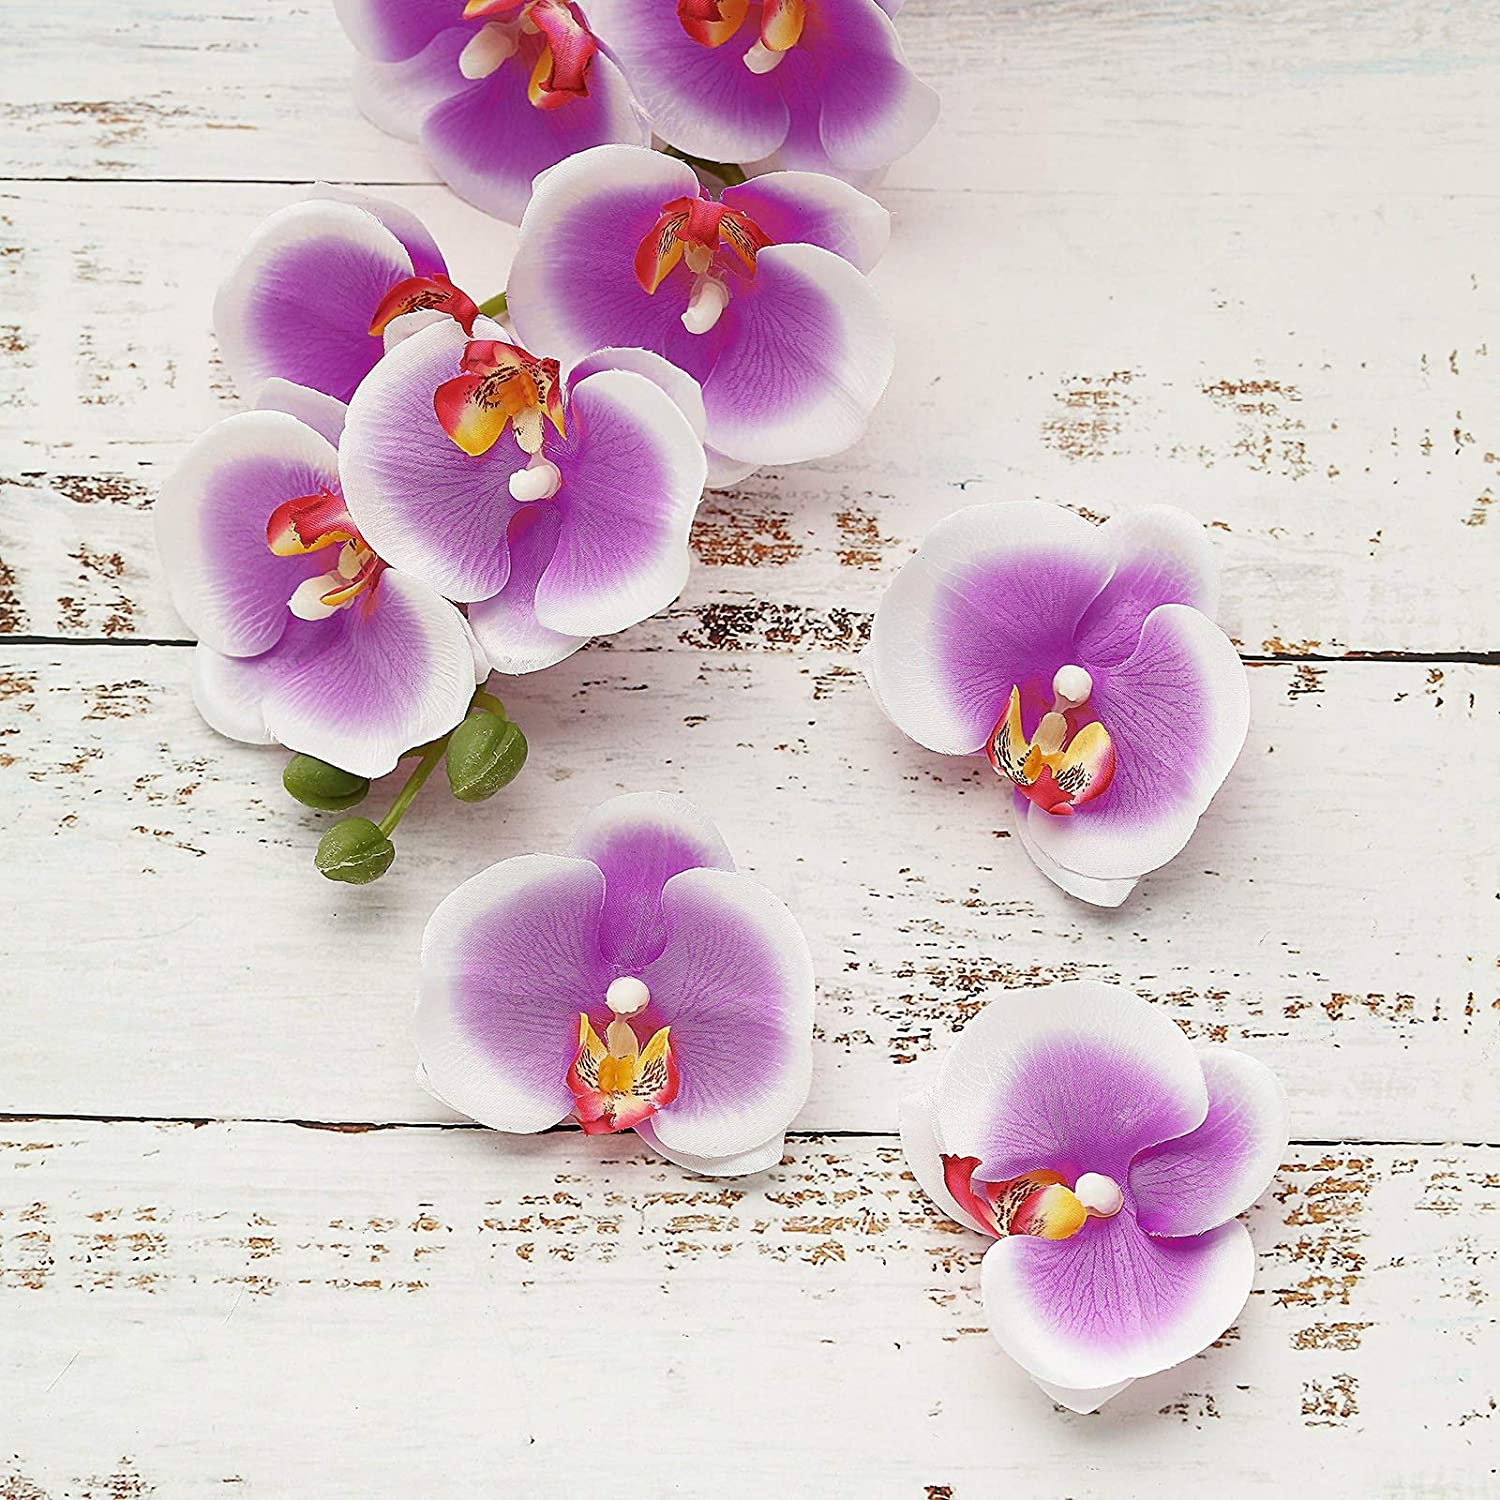 Butterfly Headsflower Artificial Flower Orchid Home Decor Festival Long Lasting